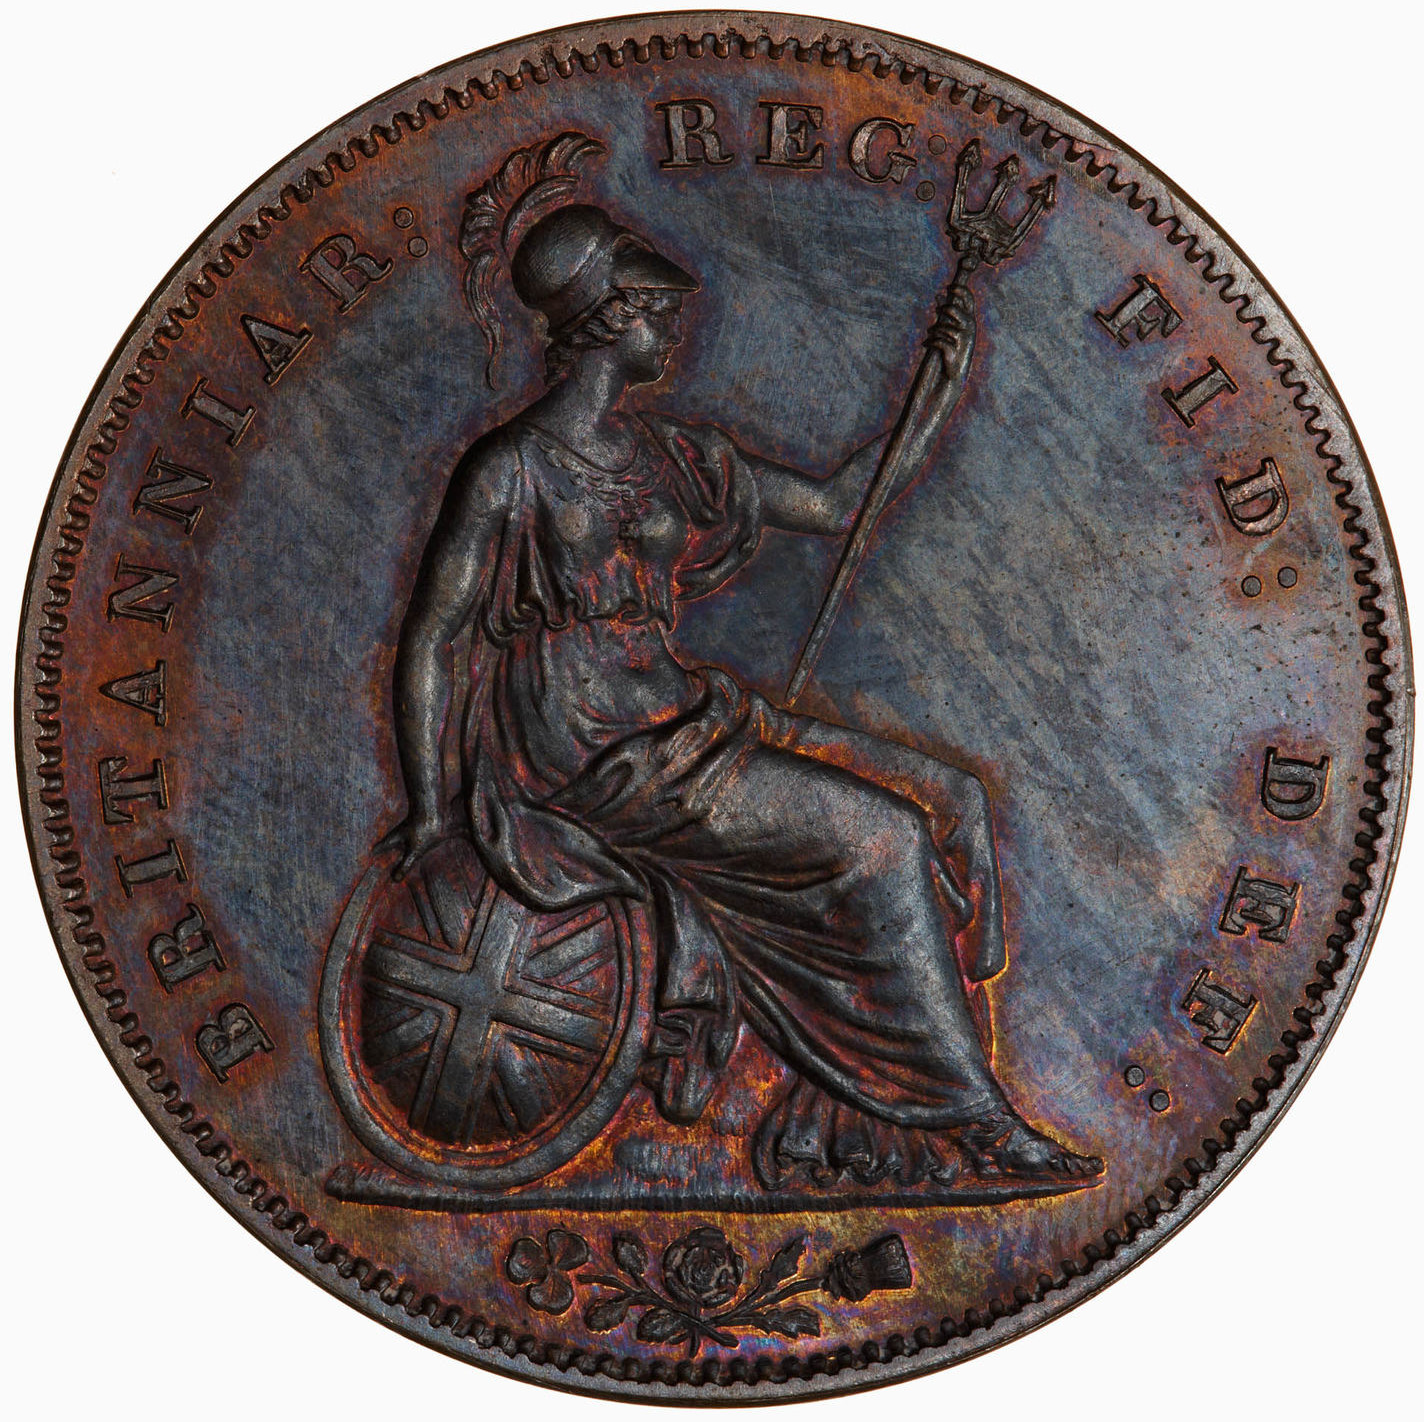 Penny 1859: Photo Proof Coin - Penny, Queen Victoria, Great Britain, 1859